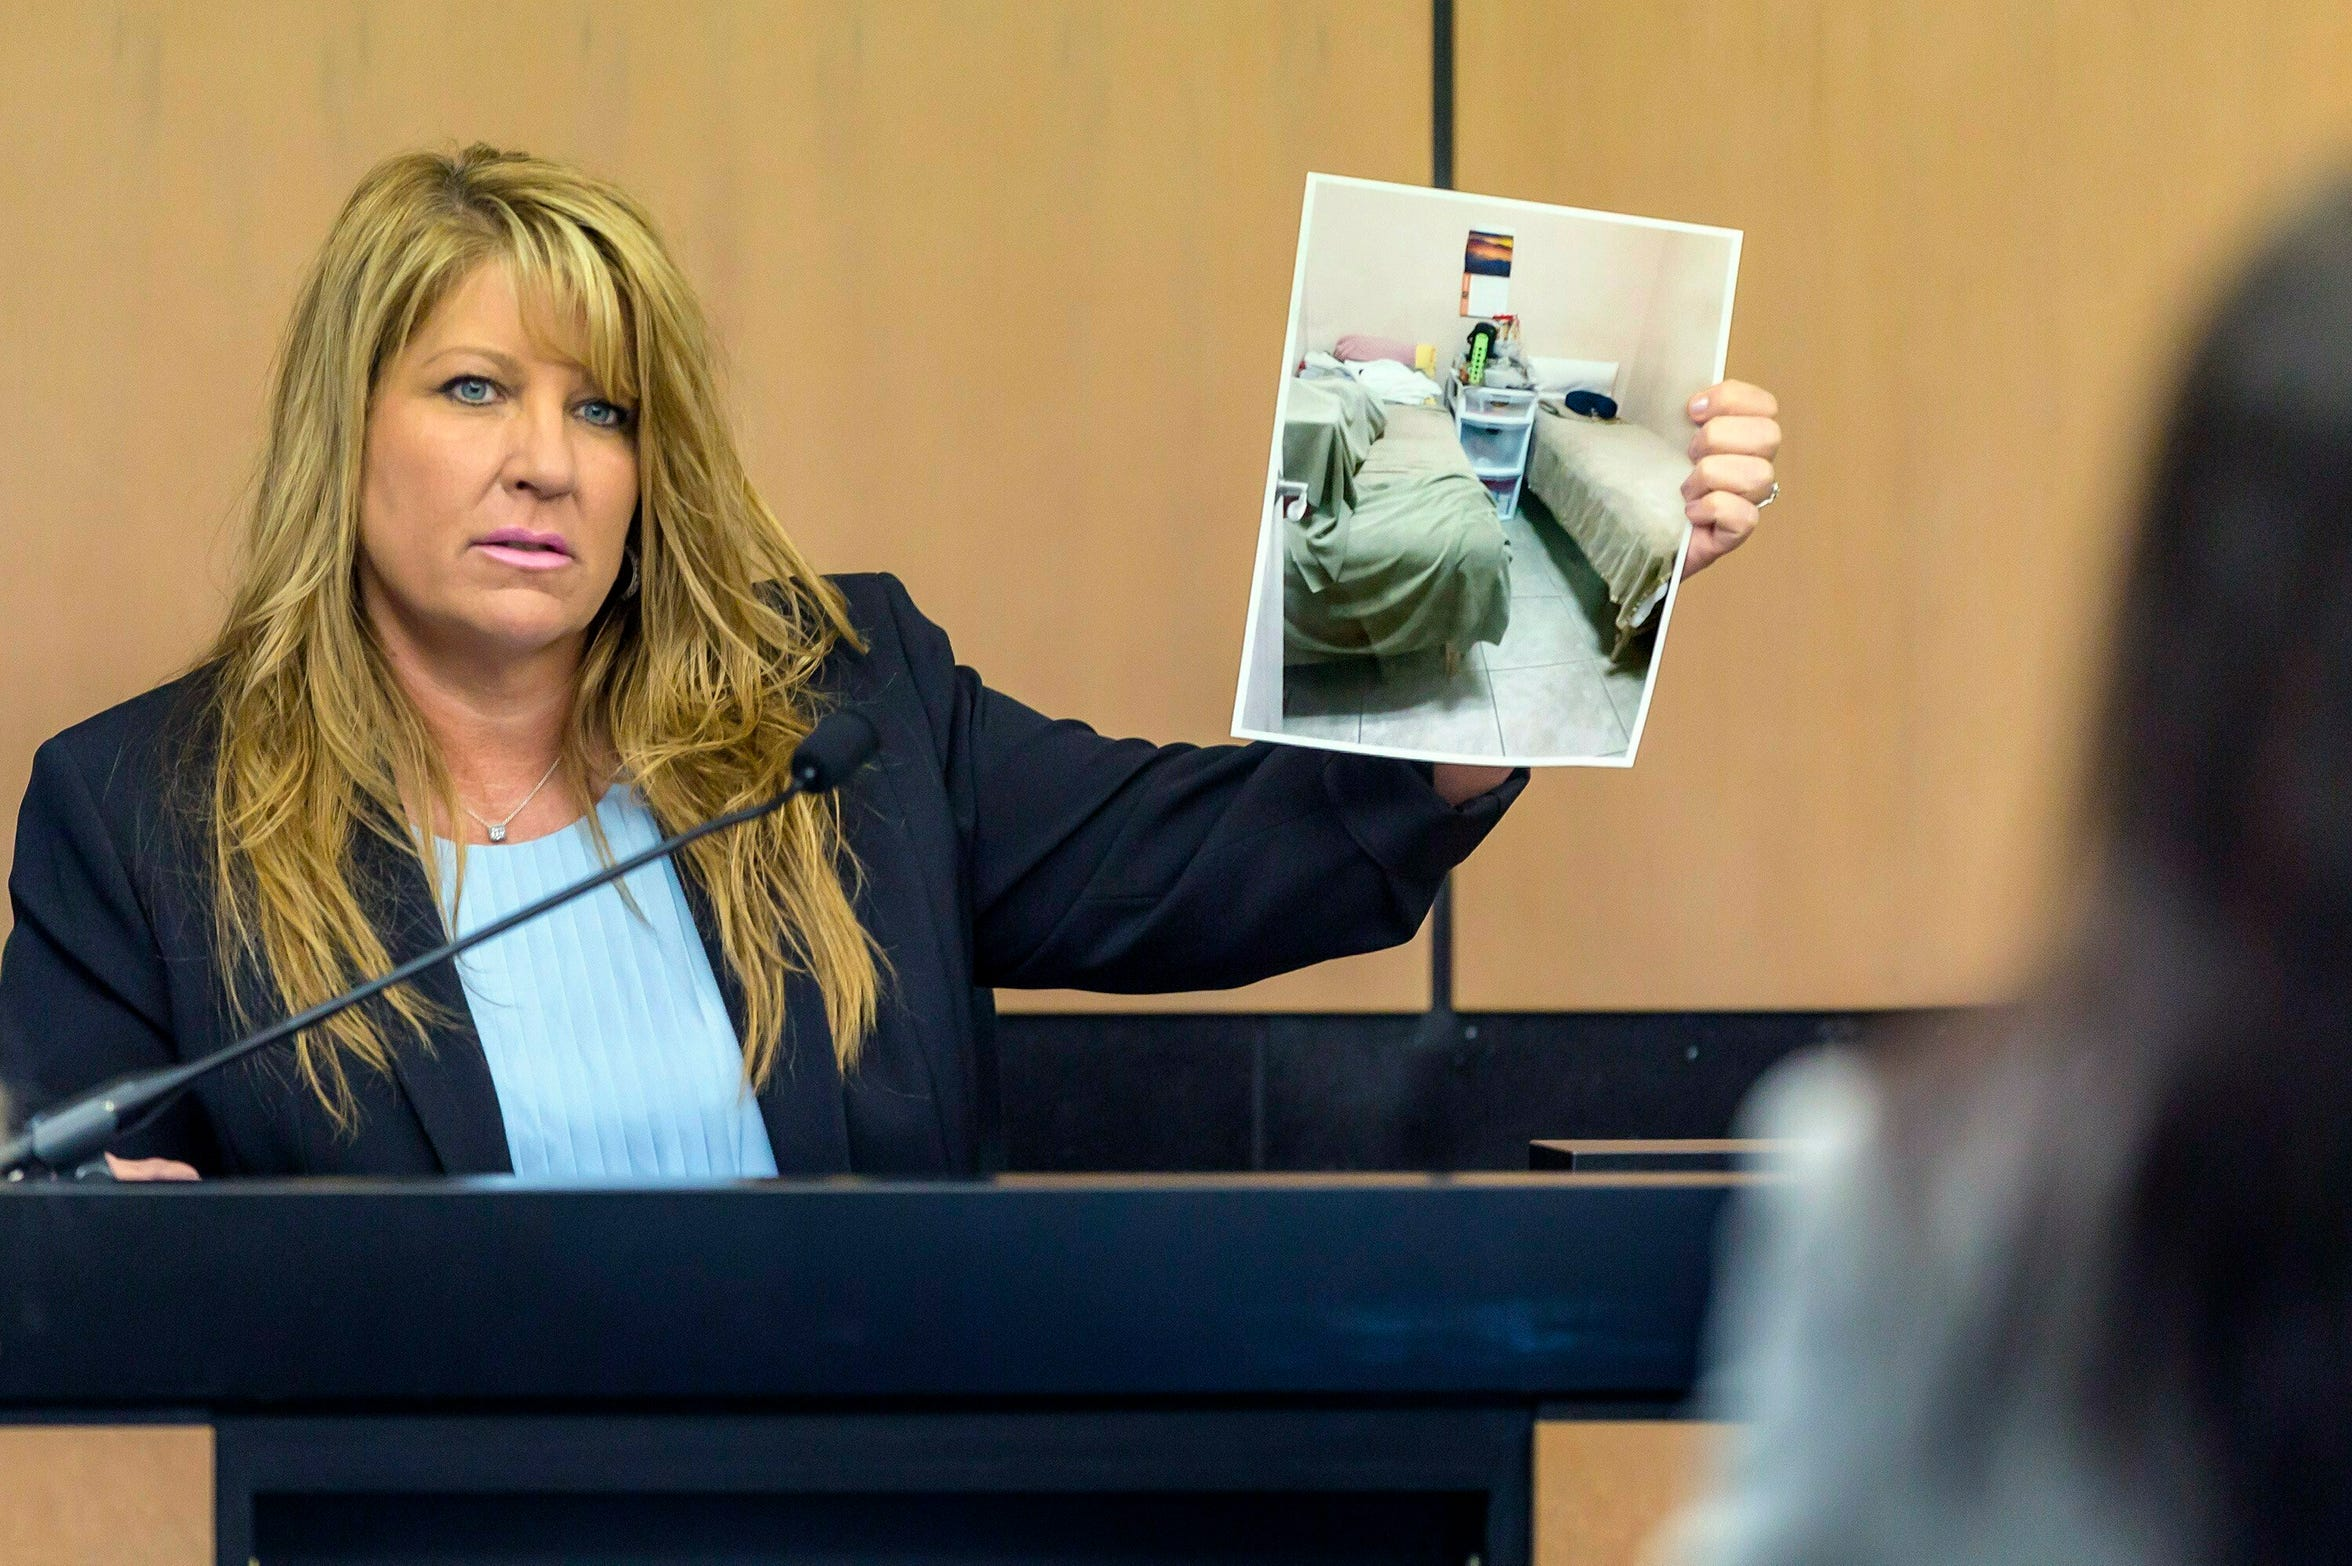 Karen Herzog, a Florida Department of Health inspector, shows a photo she took of beds in a room during her inspection of the Orchids of Asia Day Spa, during a motion hearing in the Kraft prostitution solicitation case Tuesday, April 30, 2019, in West Palm Beach. The Florida health inspector testified Tuesday that she saw possible evidence of human trafficking at the massage parlor where police say New England Patriots owner Robert Kraft later was accused of paying for sex, leading her to fear for her safety.